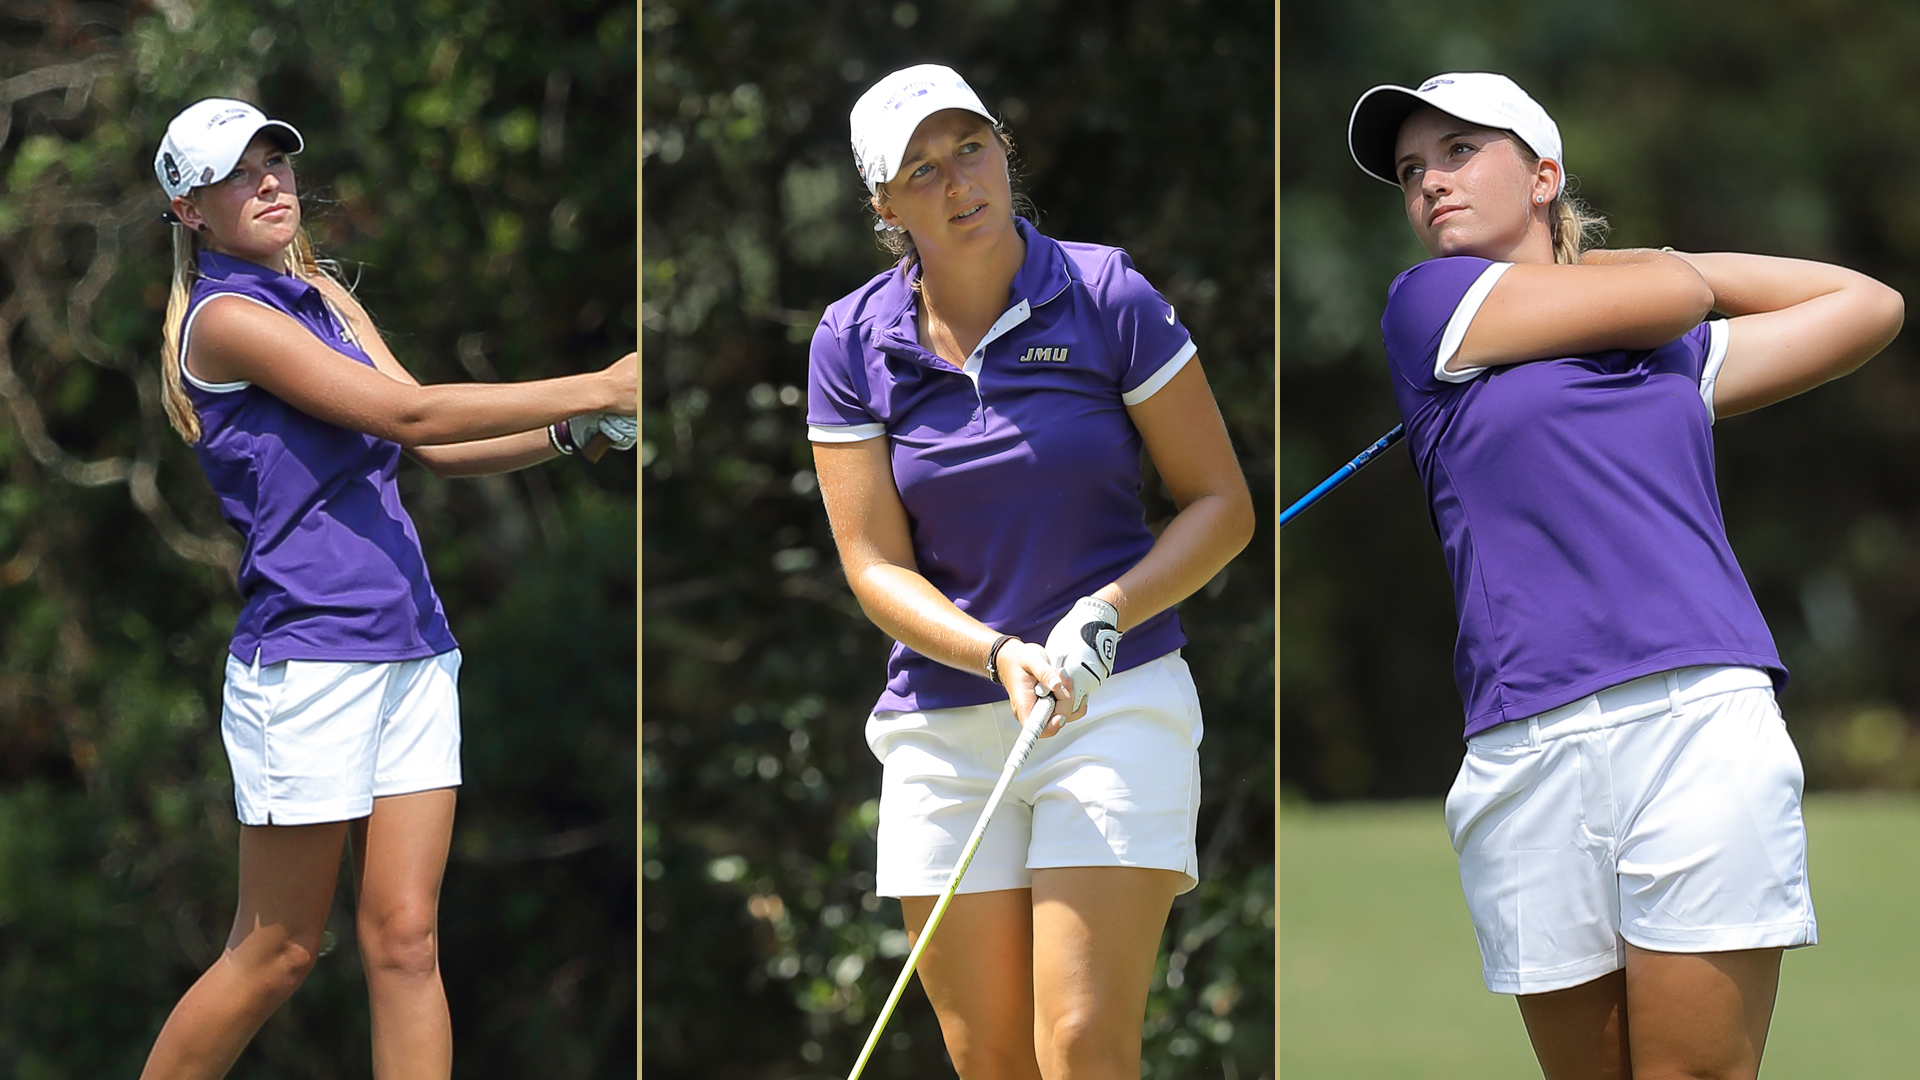 Women's Golf: Comegys Named State ROY; Cox, Gomez-Ruiz Earn All-State Honors)